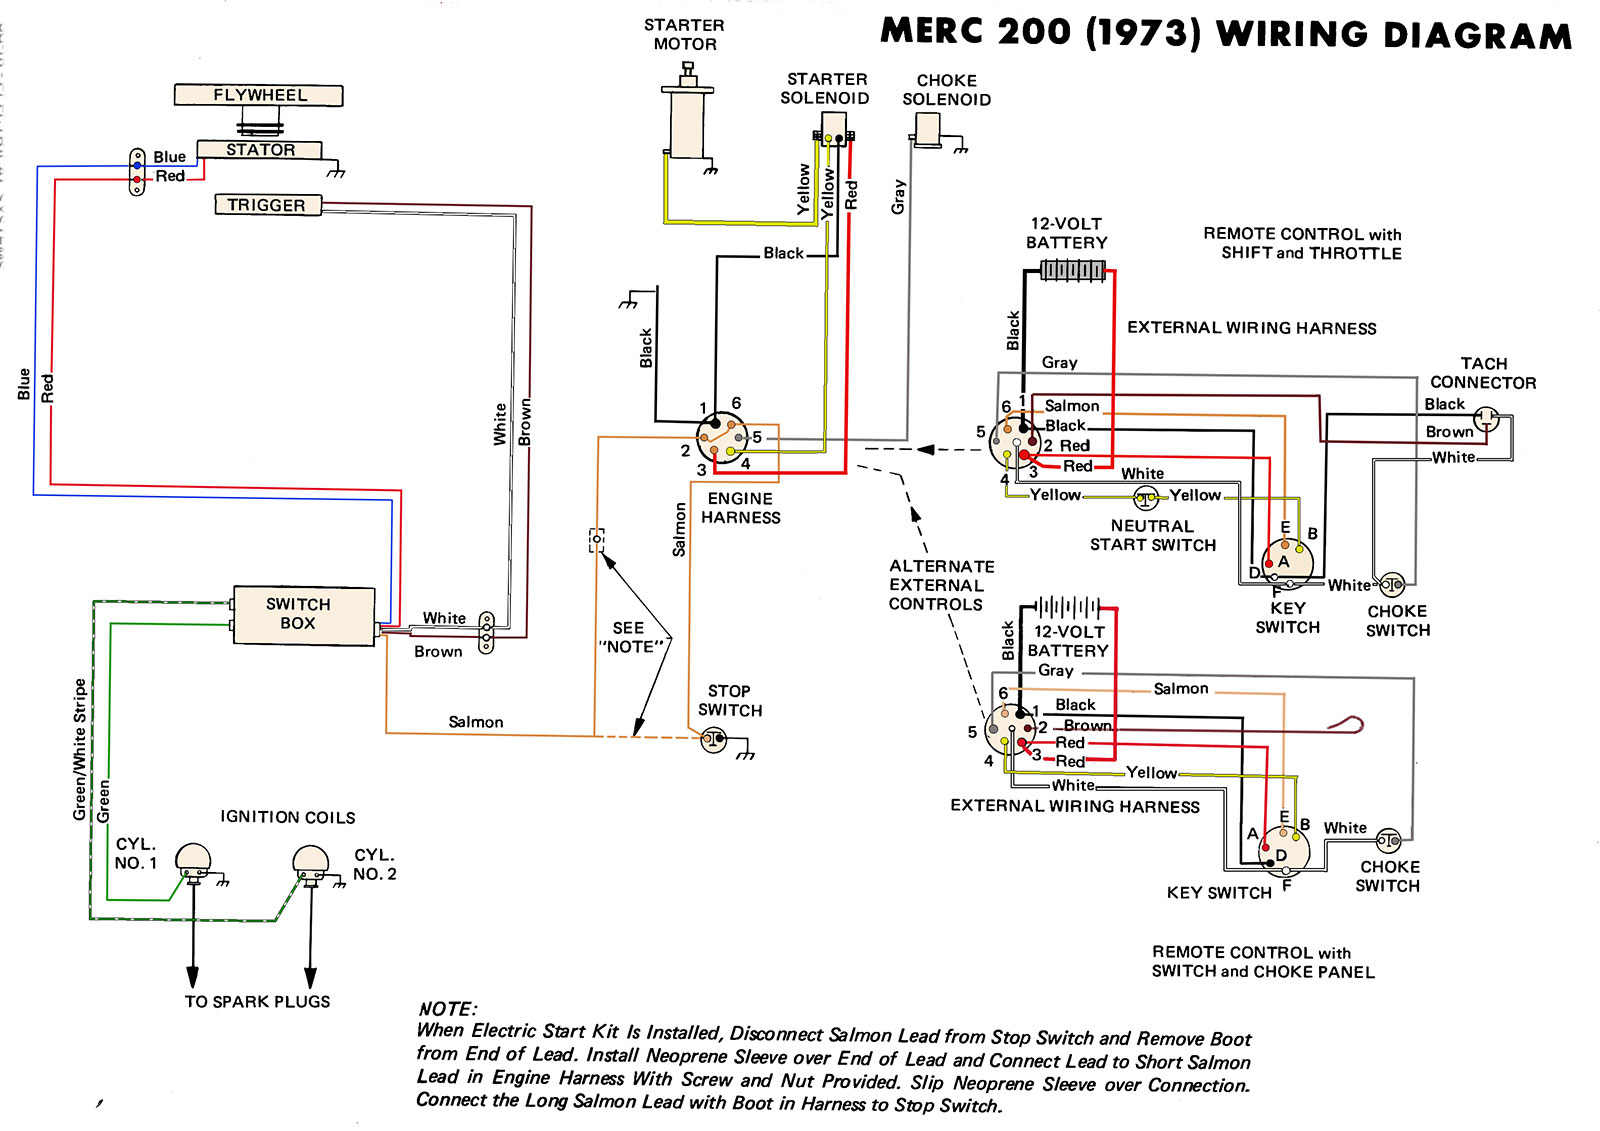 90 mercury outboard wiring diagram wiring diagram data todaymercury outboard wiring diagrams mastertech marin 2000 90 hp mercury outboard wiring diagram 90 mercury outboard wiring diagram